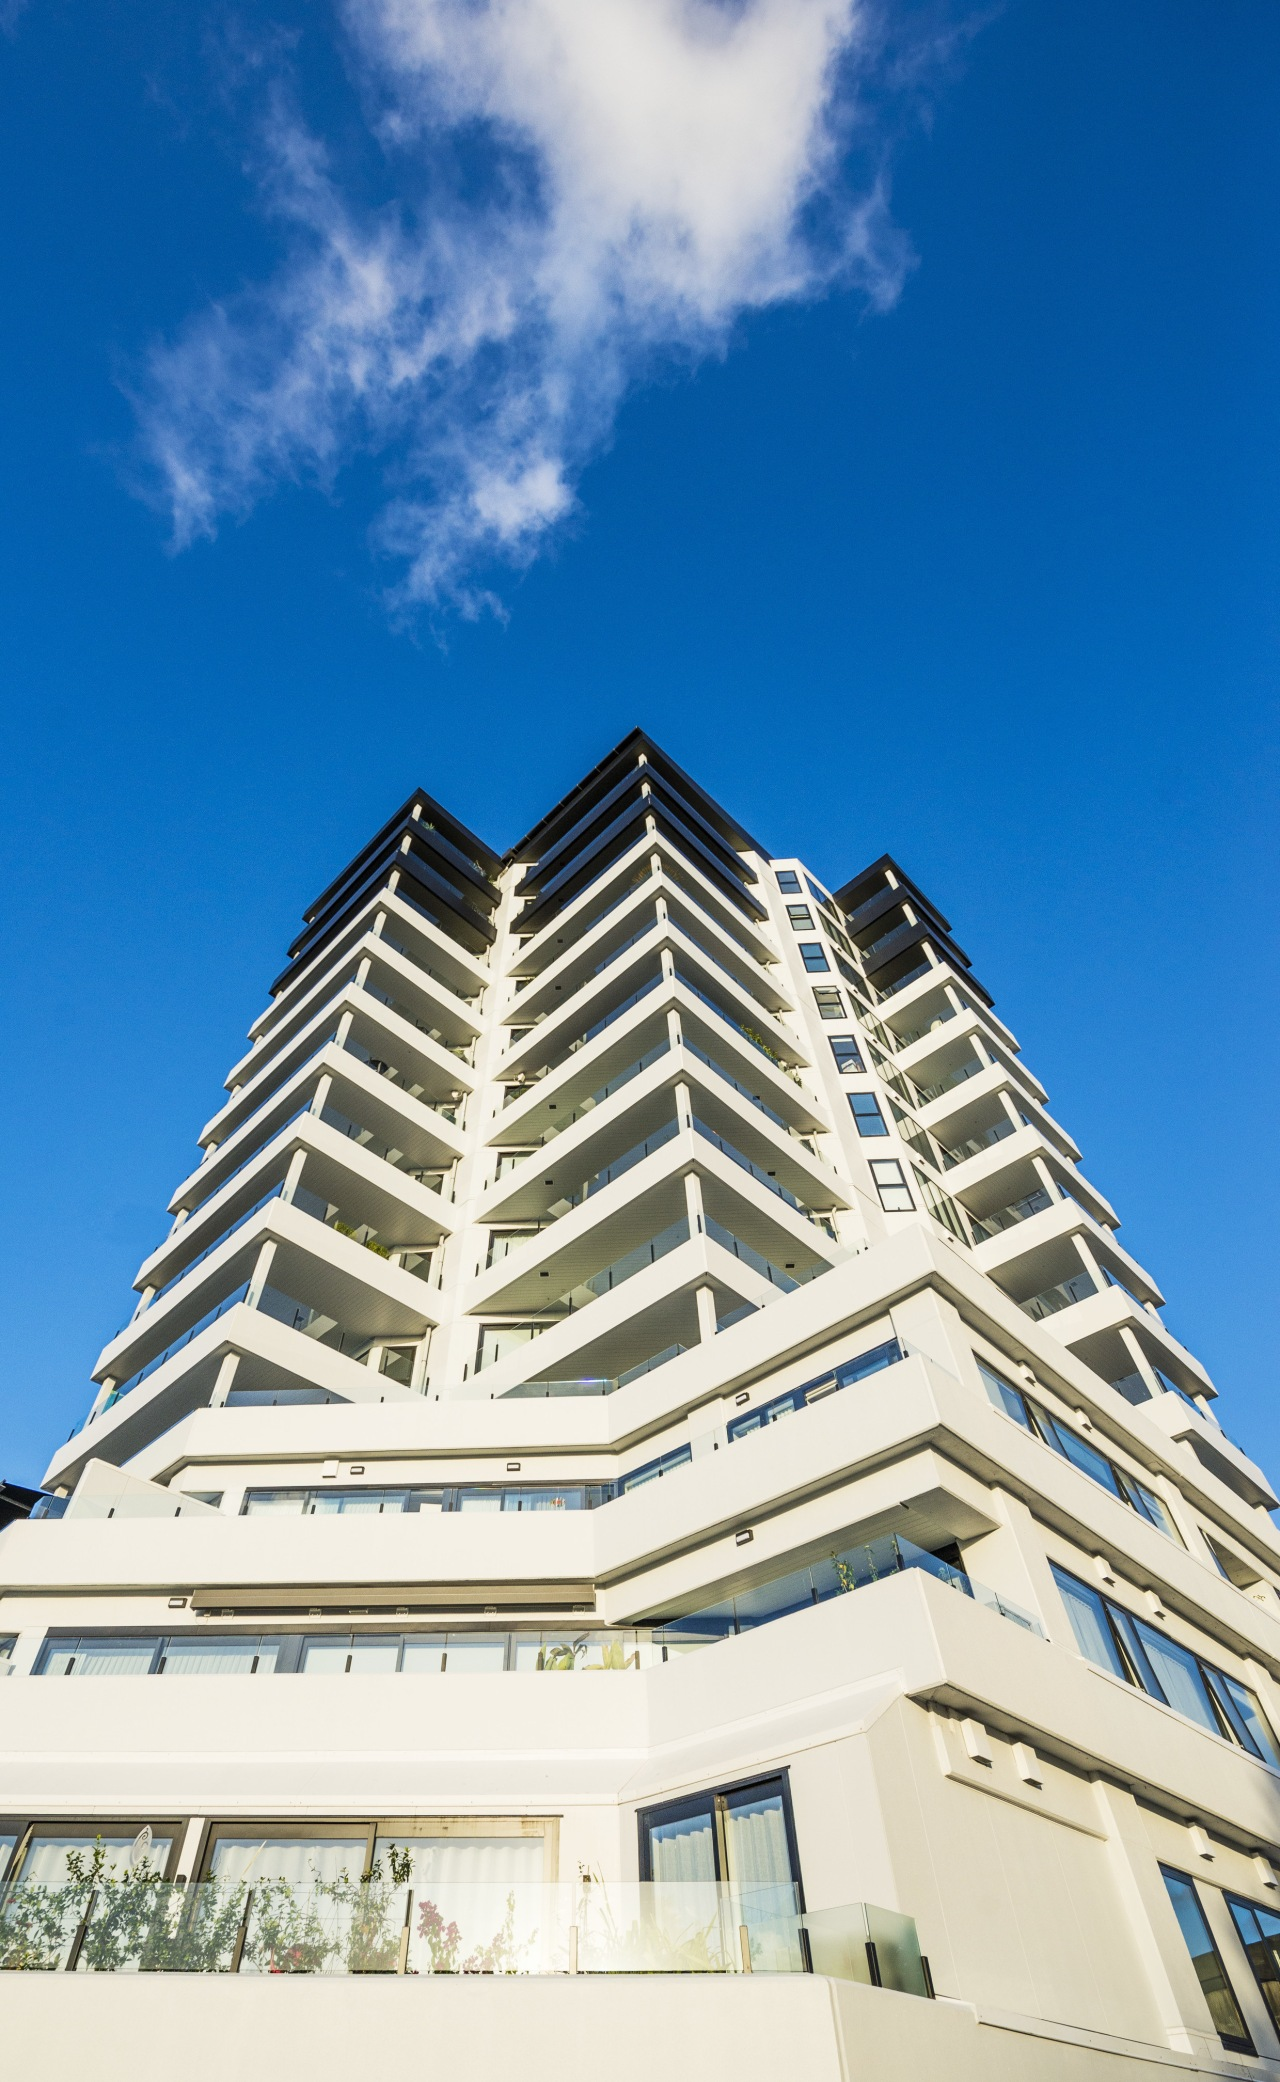 Angular balconies give Hopetoun Residences its individual architectural architecture, building, commercial building, condominium, corporate headquarters, daylighting, daytime, estate, facade, landmark, metropolitan area, real estate, residential area, sky, tower block, blue, white